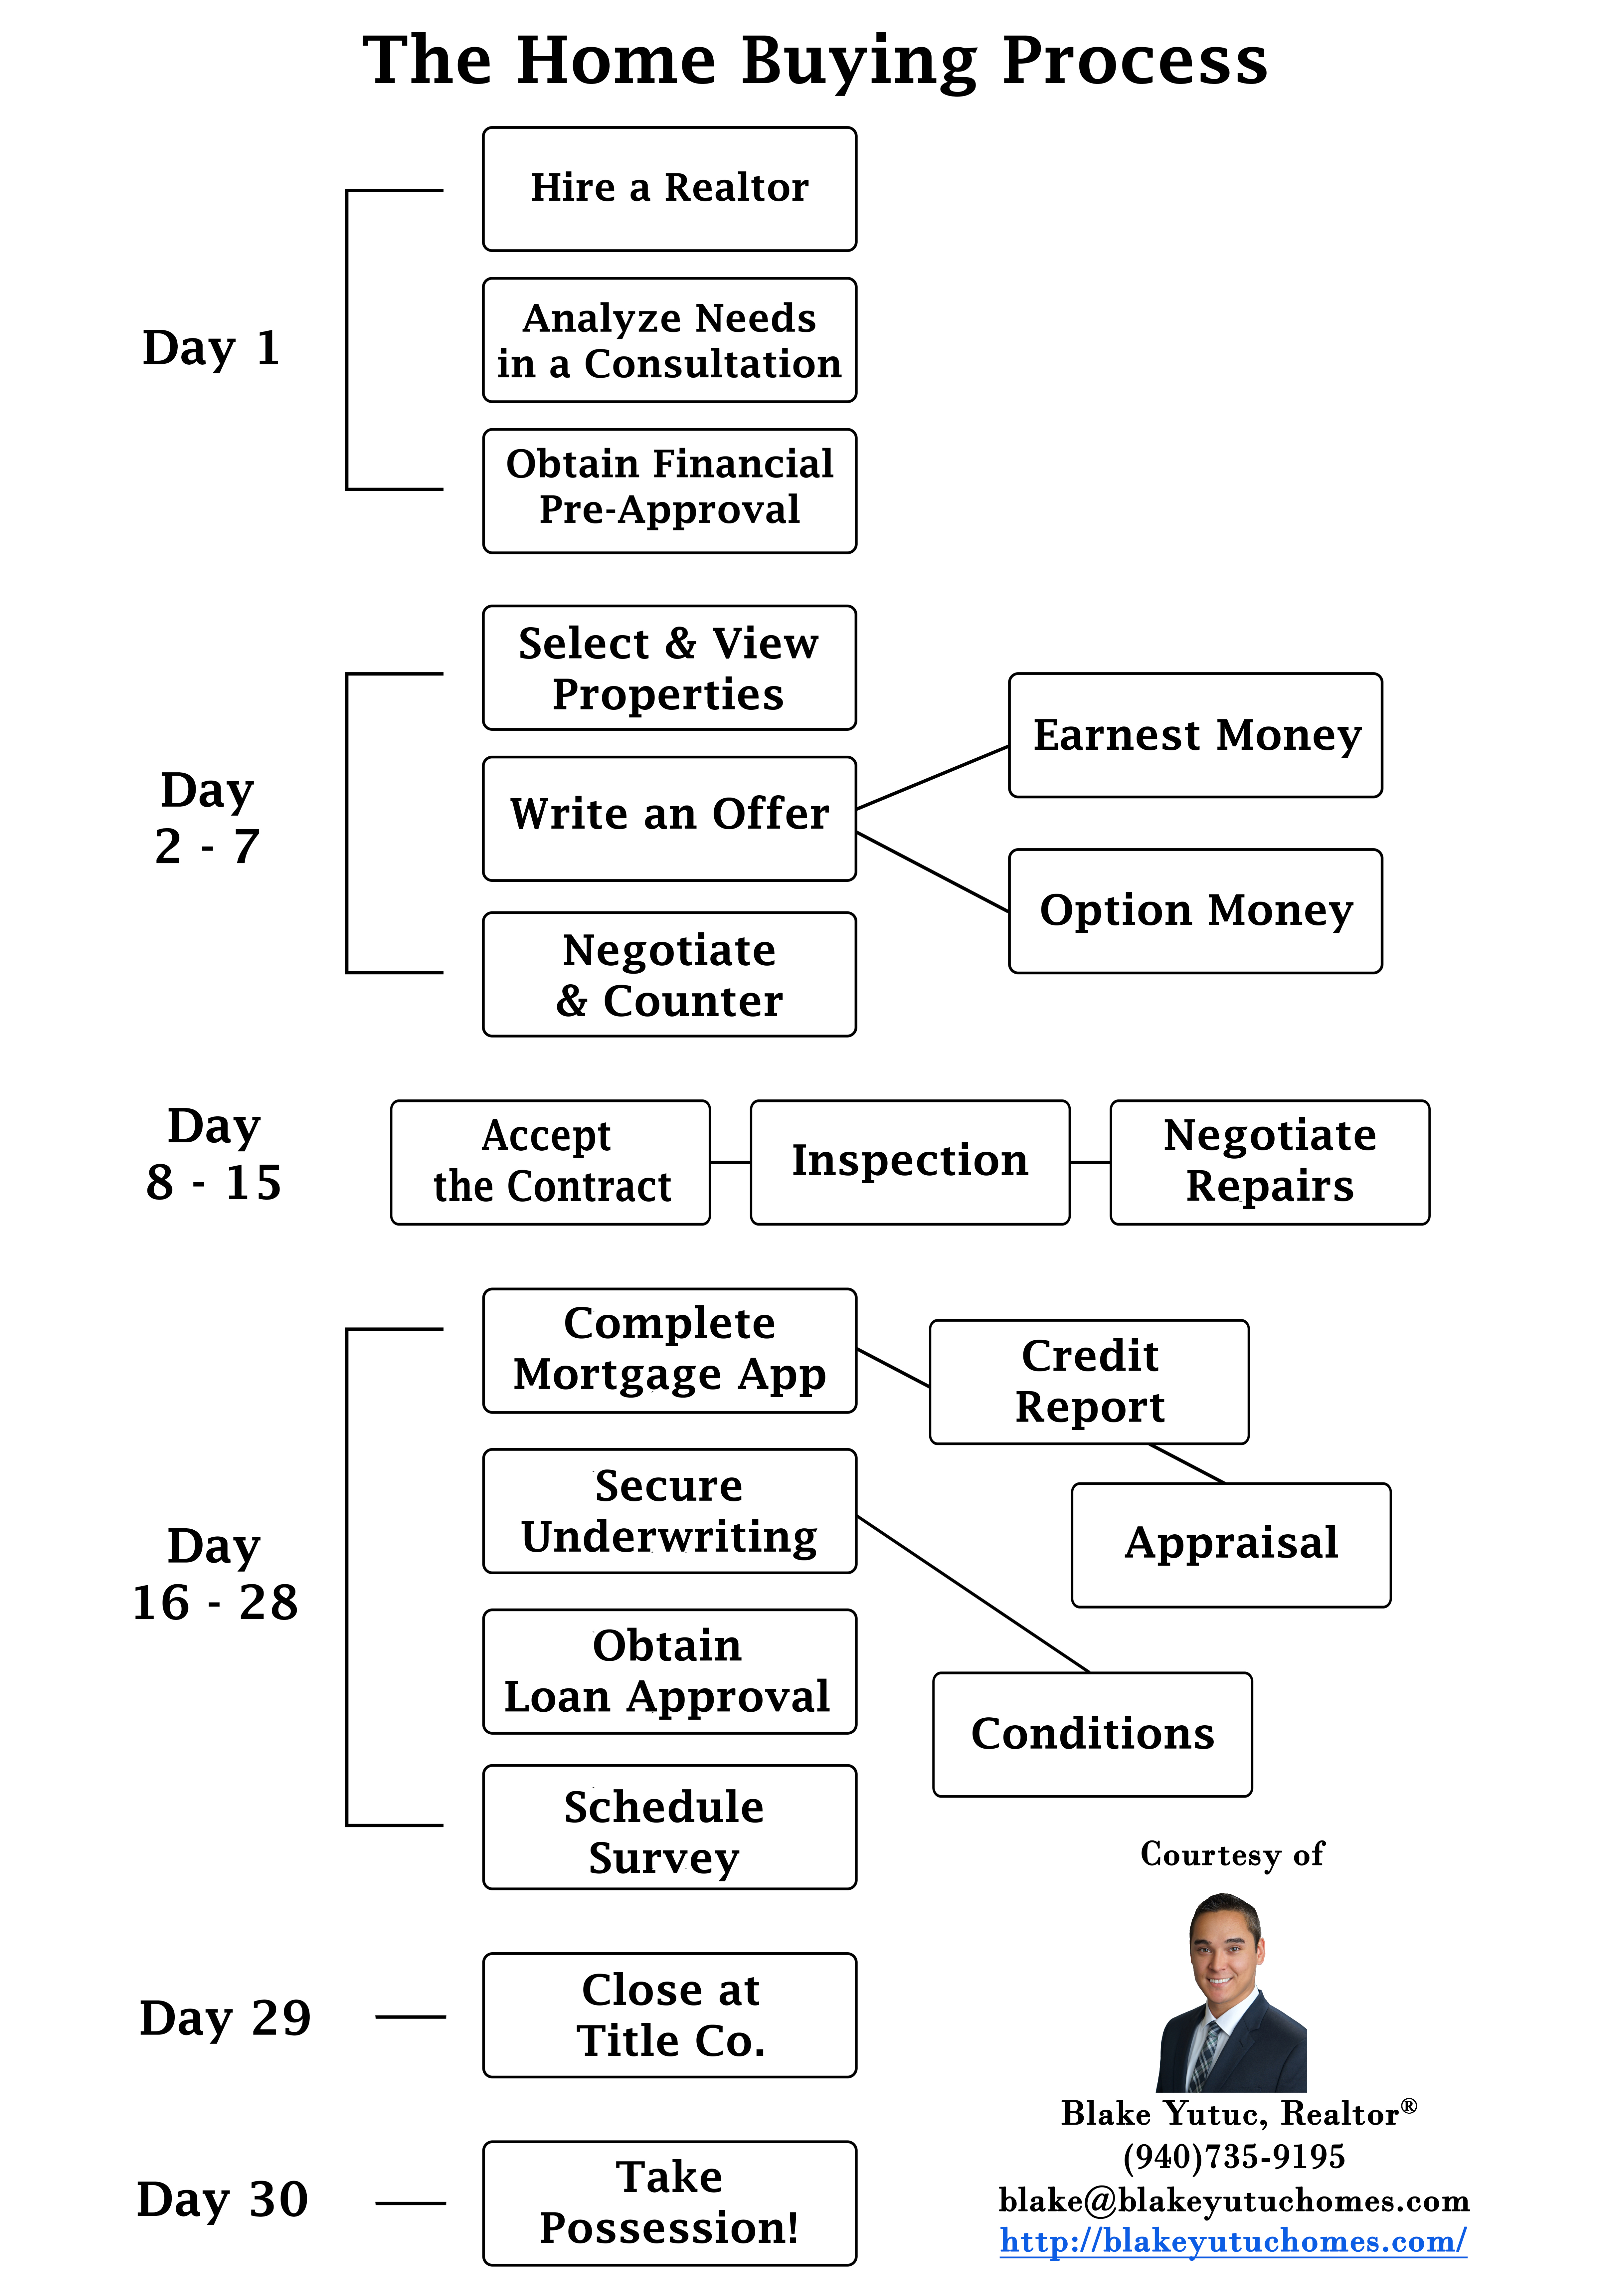 The home buying process flow chart